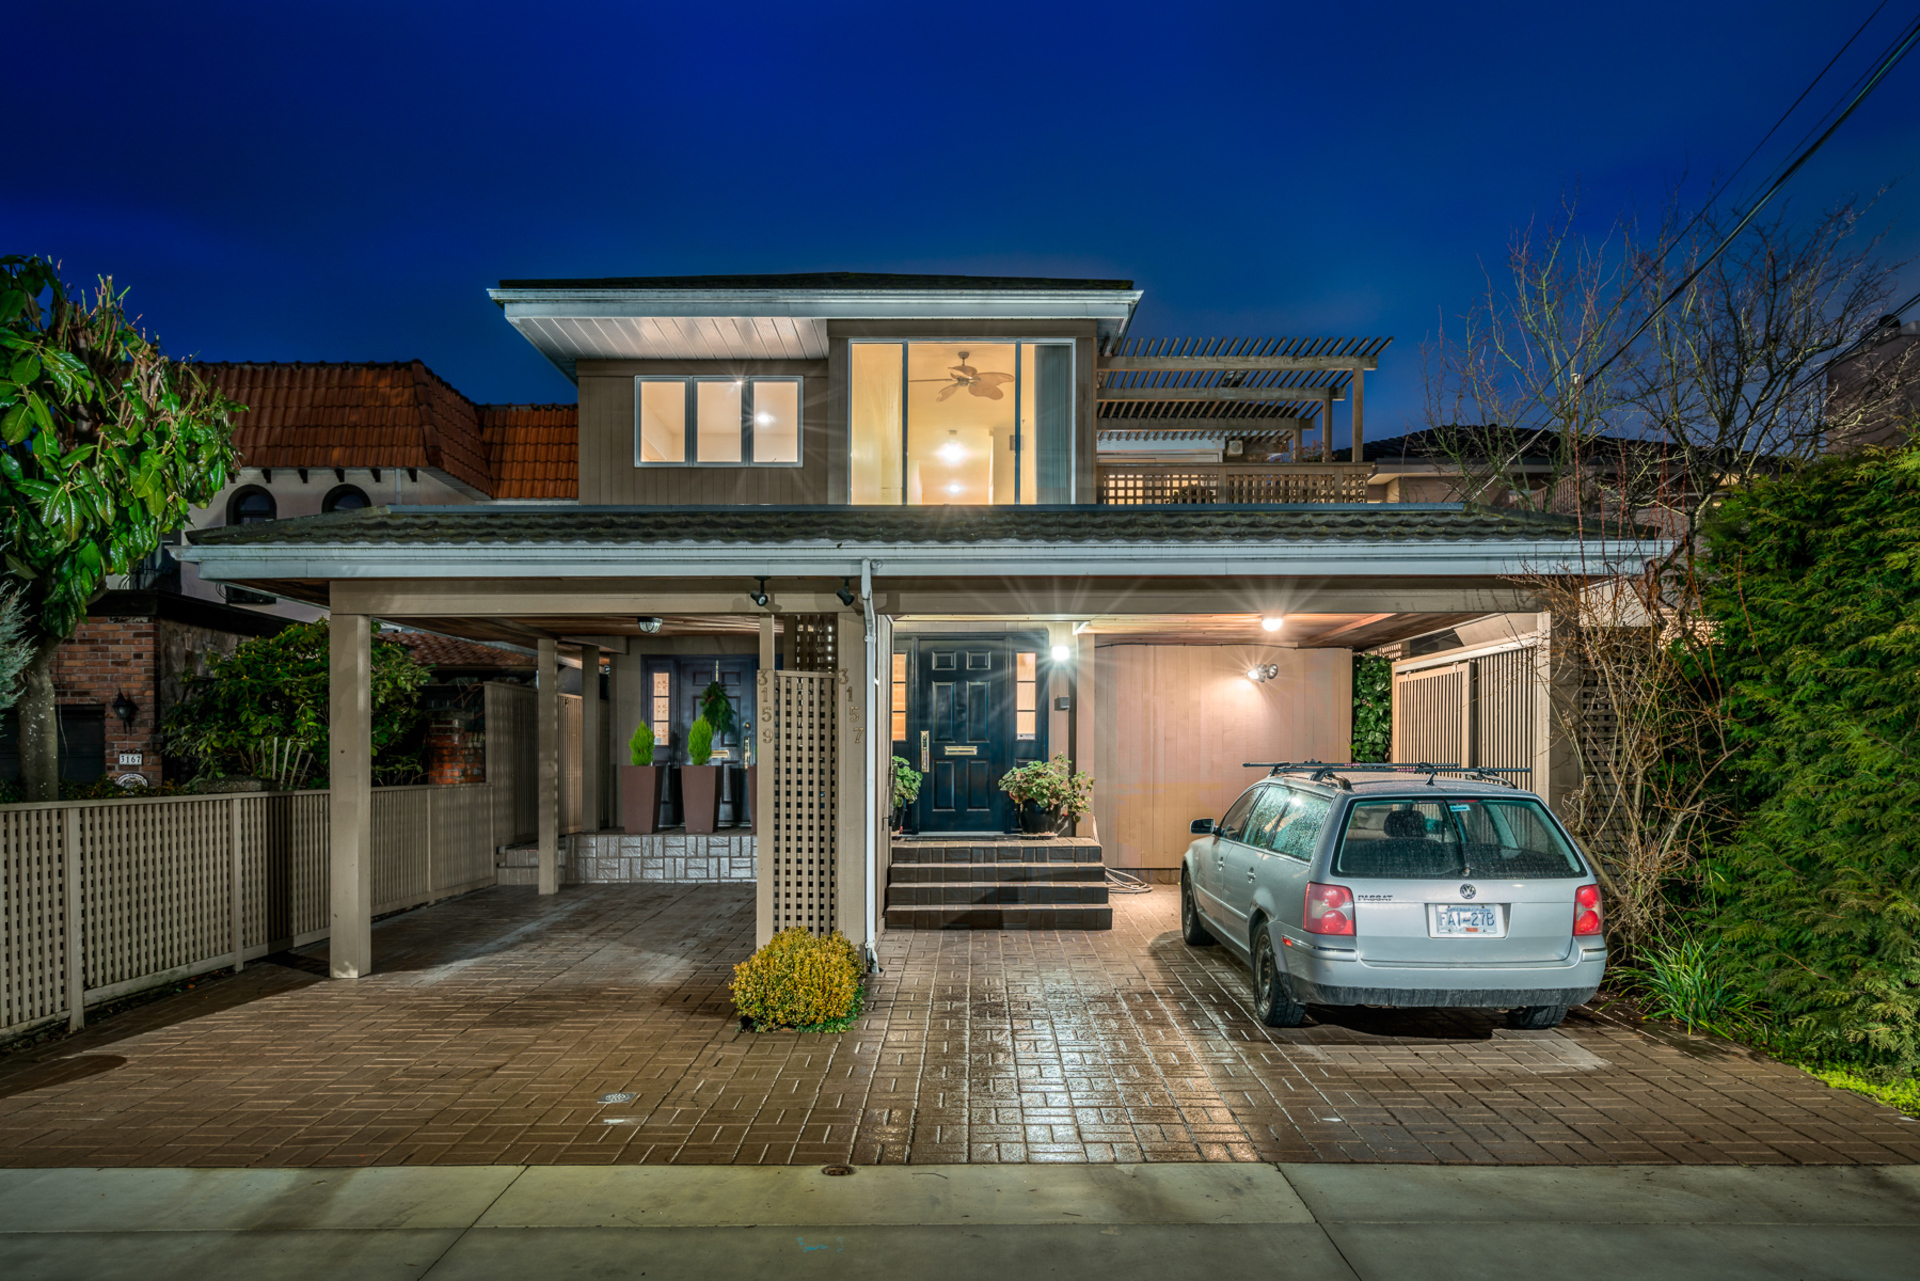 3157-point-grey-road-vancouver-360hometours-24s.jpg